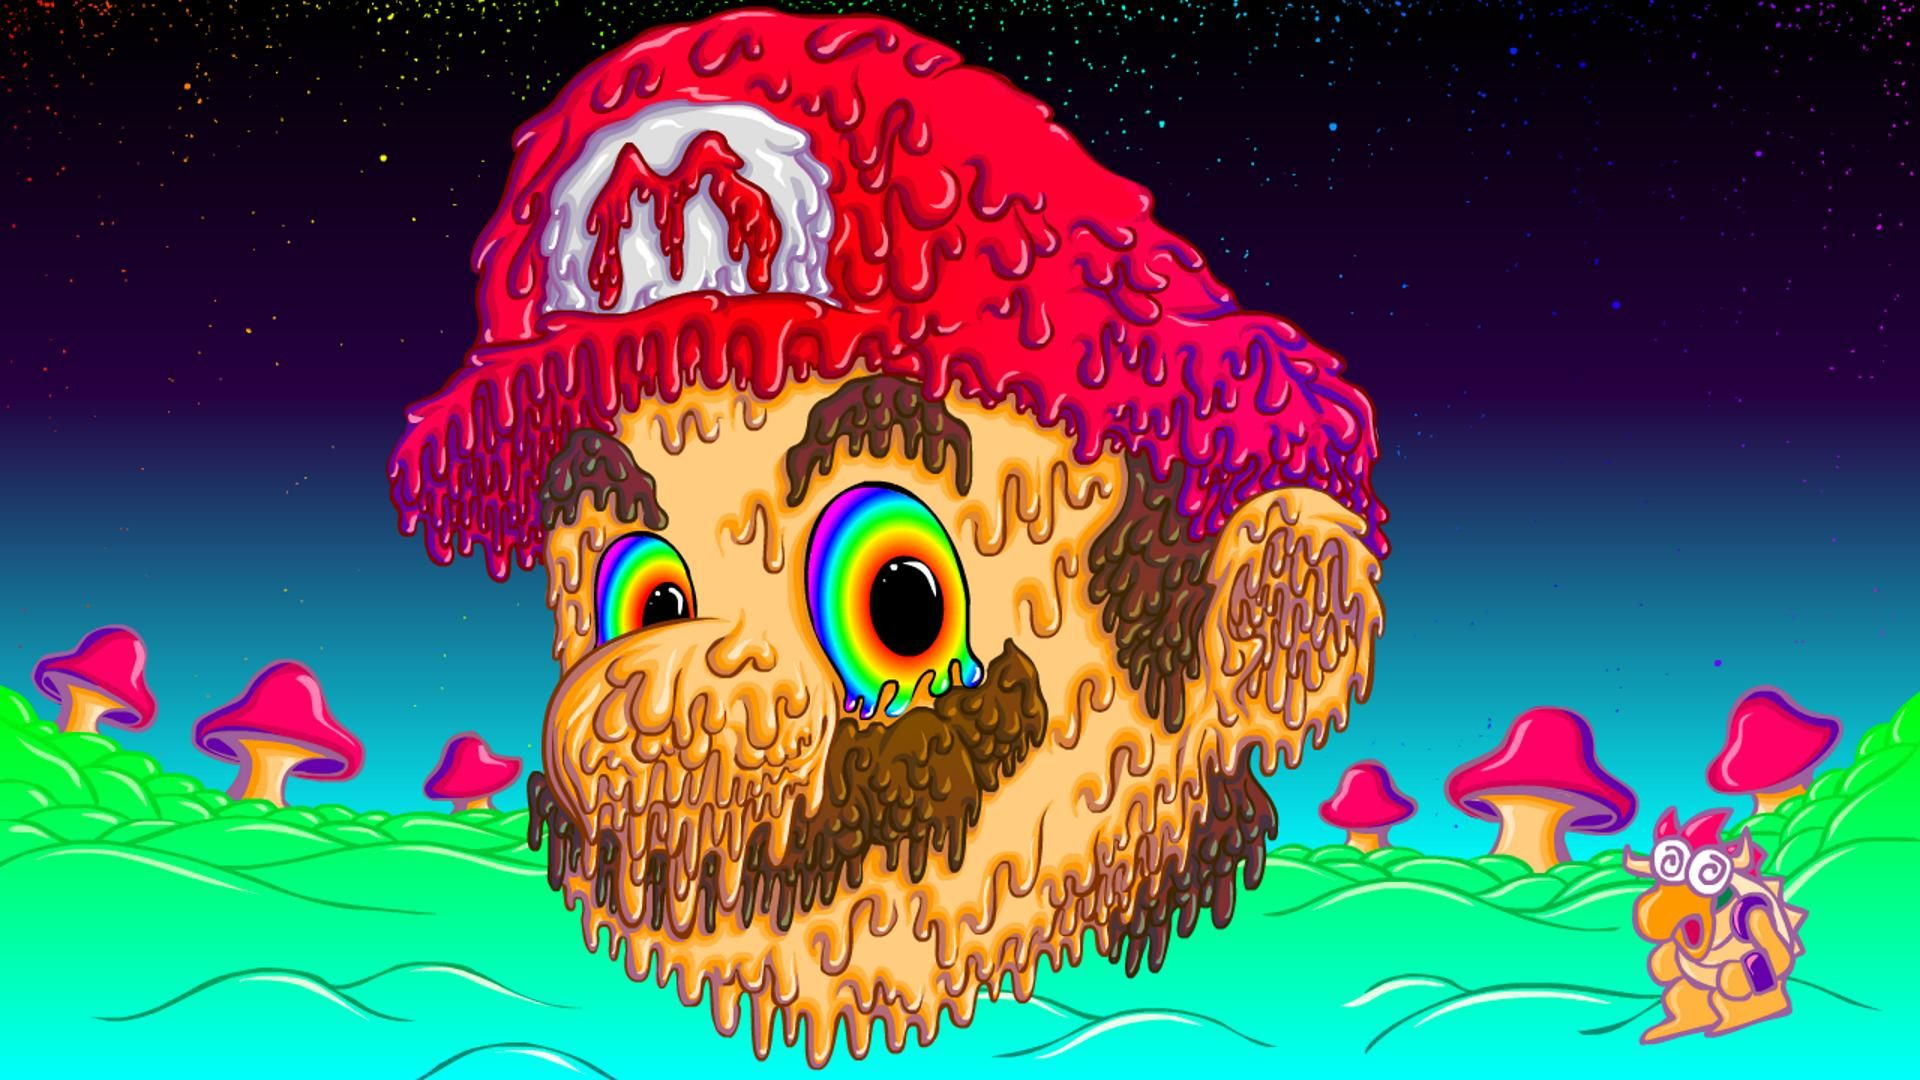 Trippy mario 1920x1080 wallpapers in 2019 trippy wallpaper trippy pictures trippy - Trippy acid pics ...